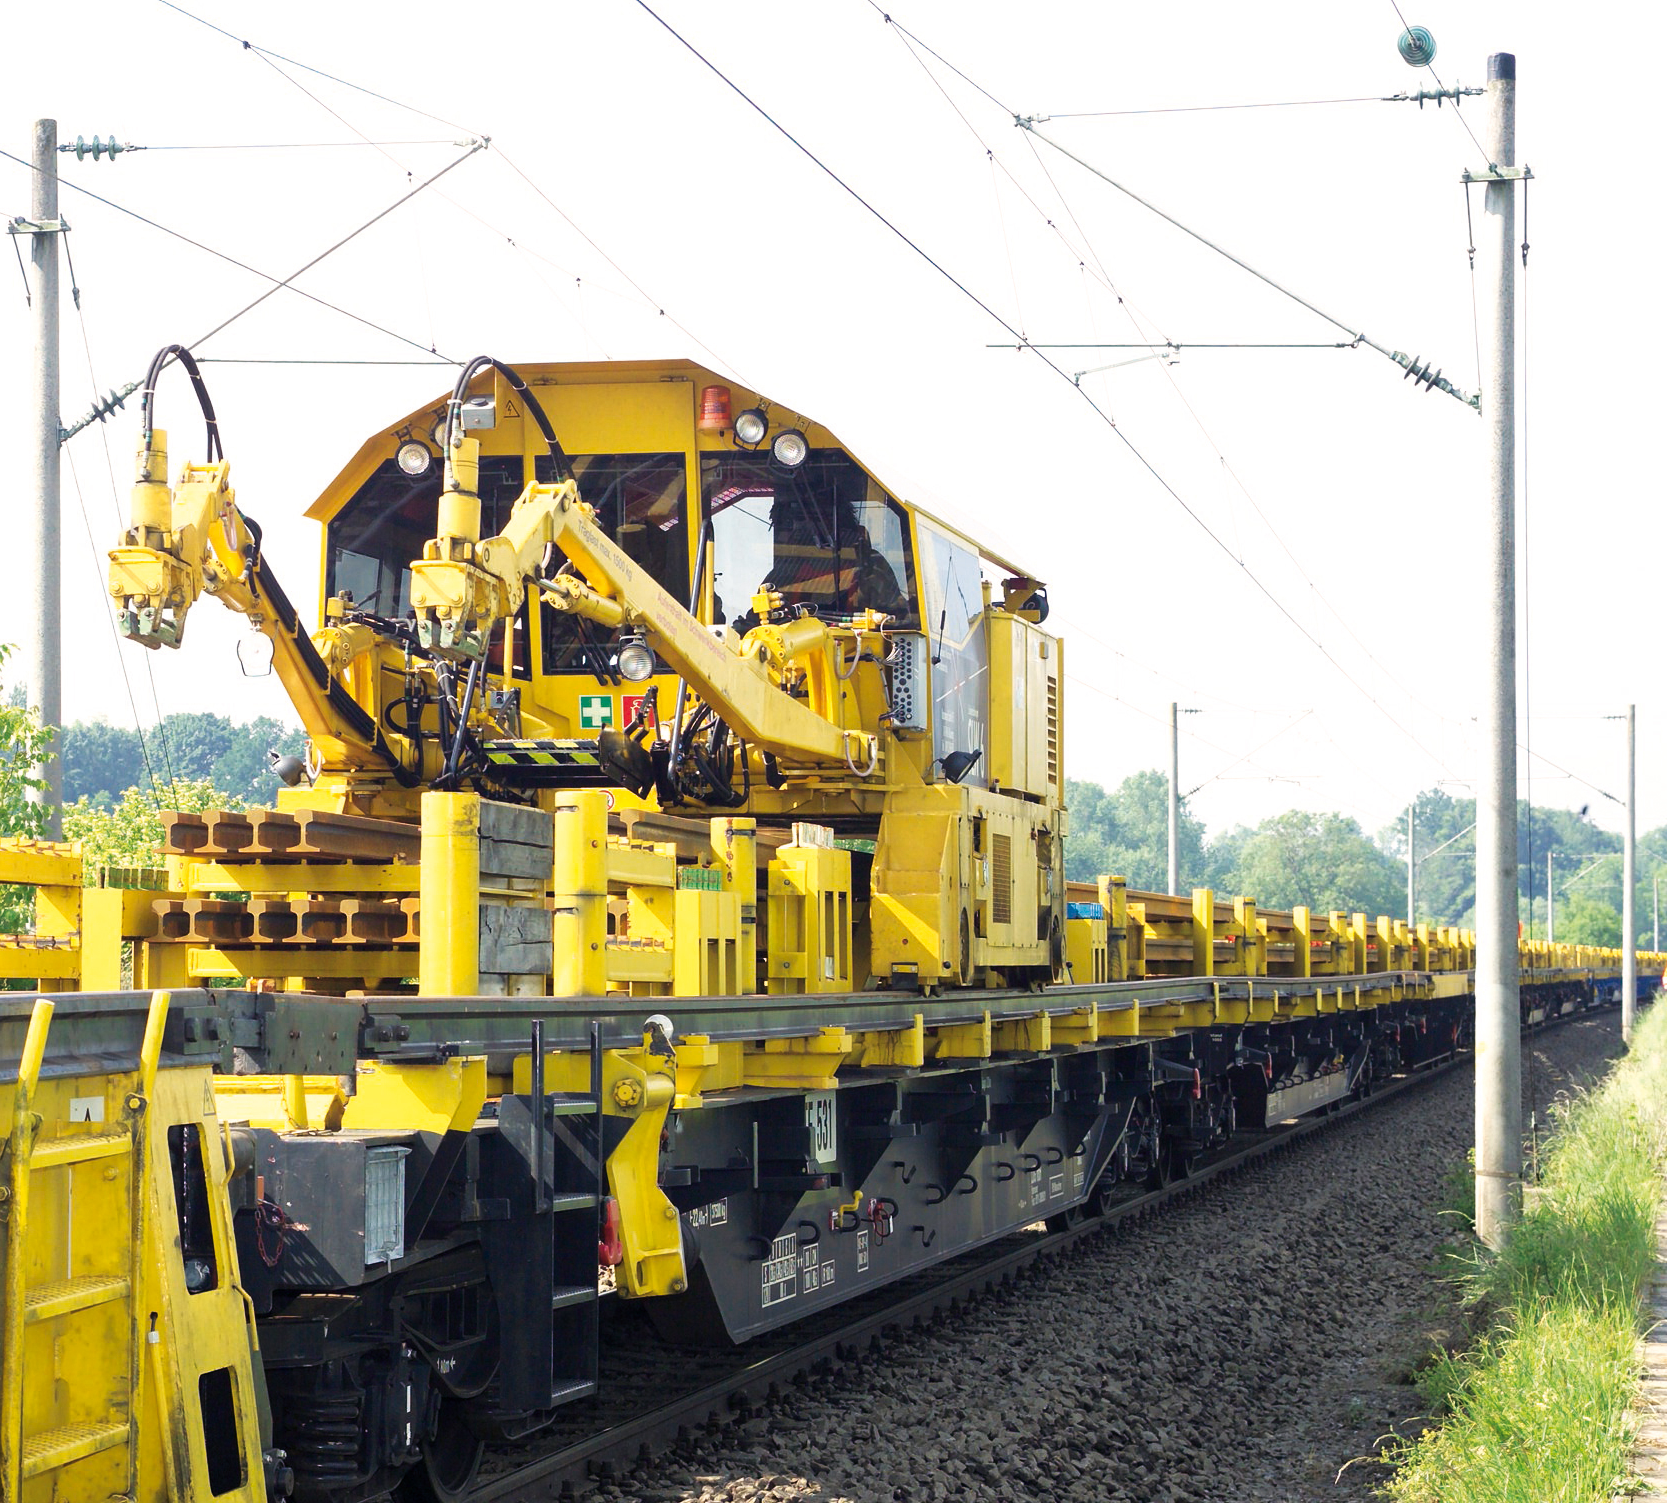 Robel ROREXS rail exchange system